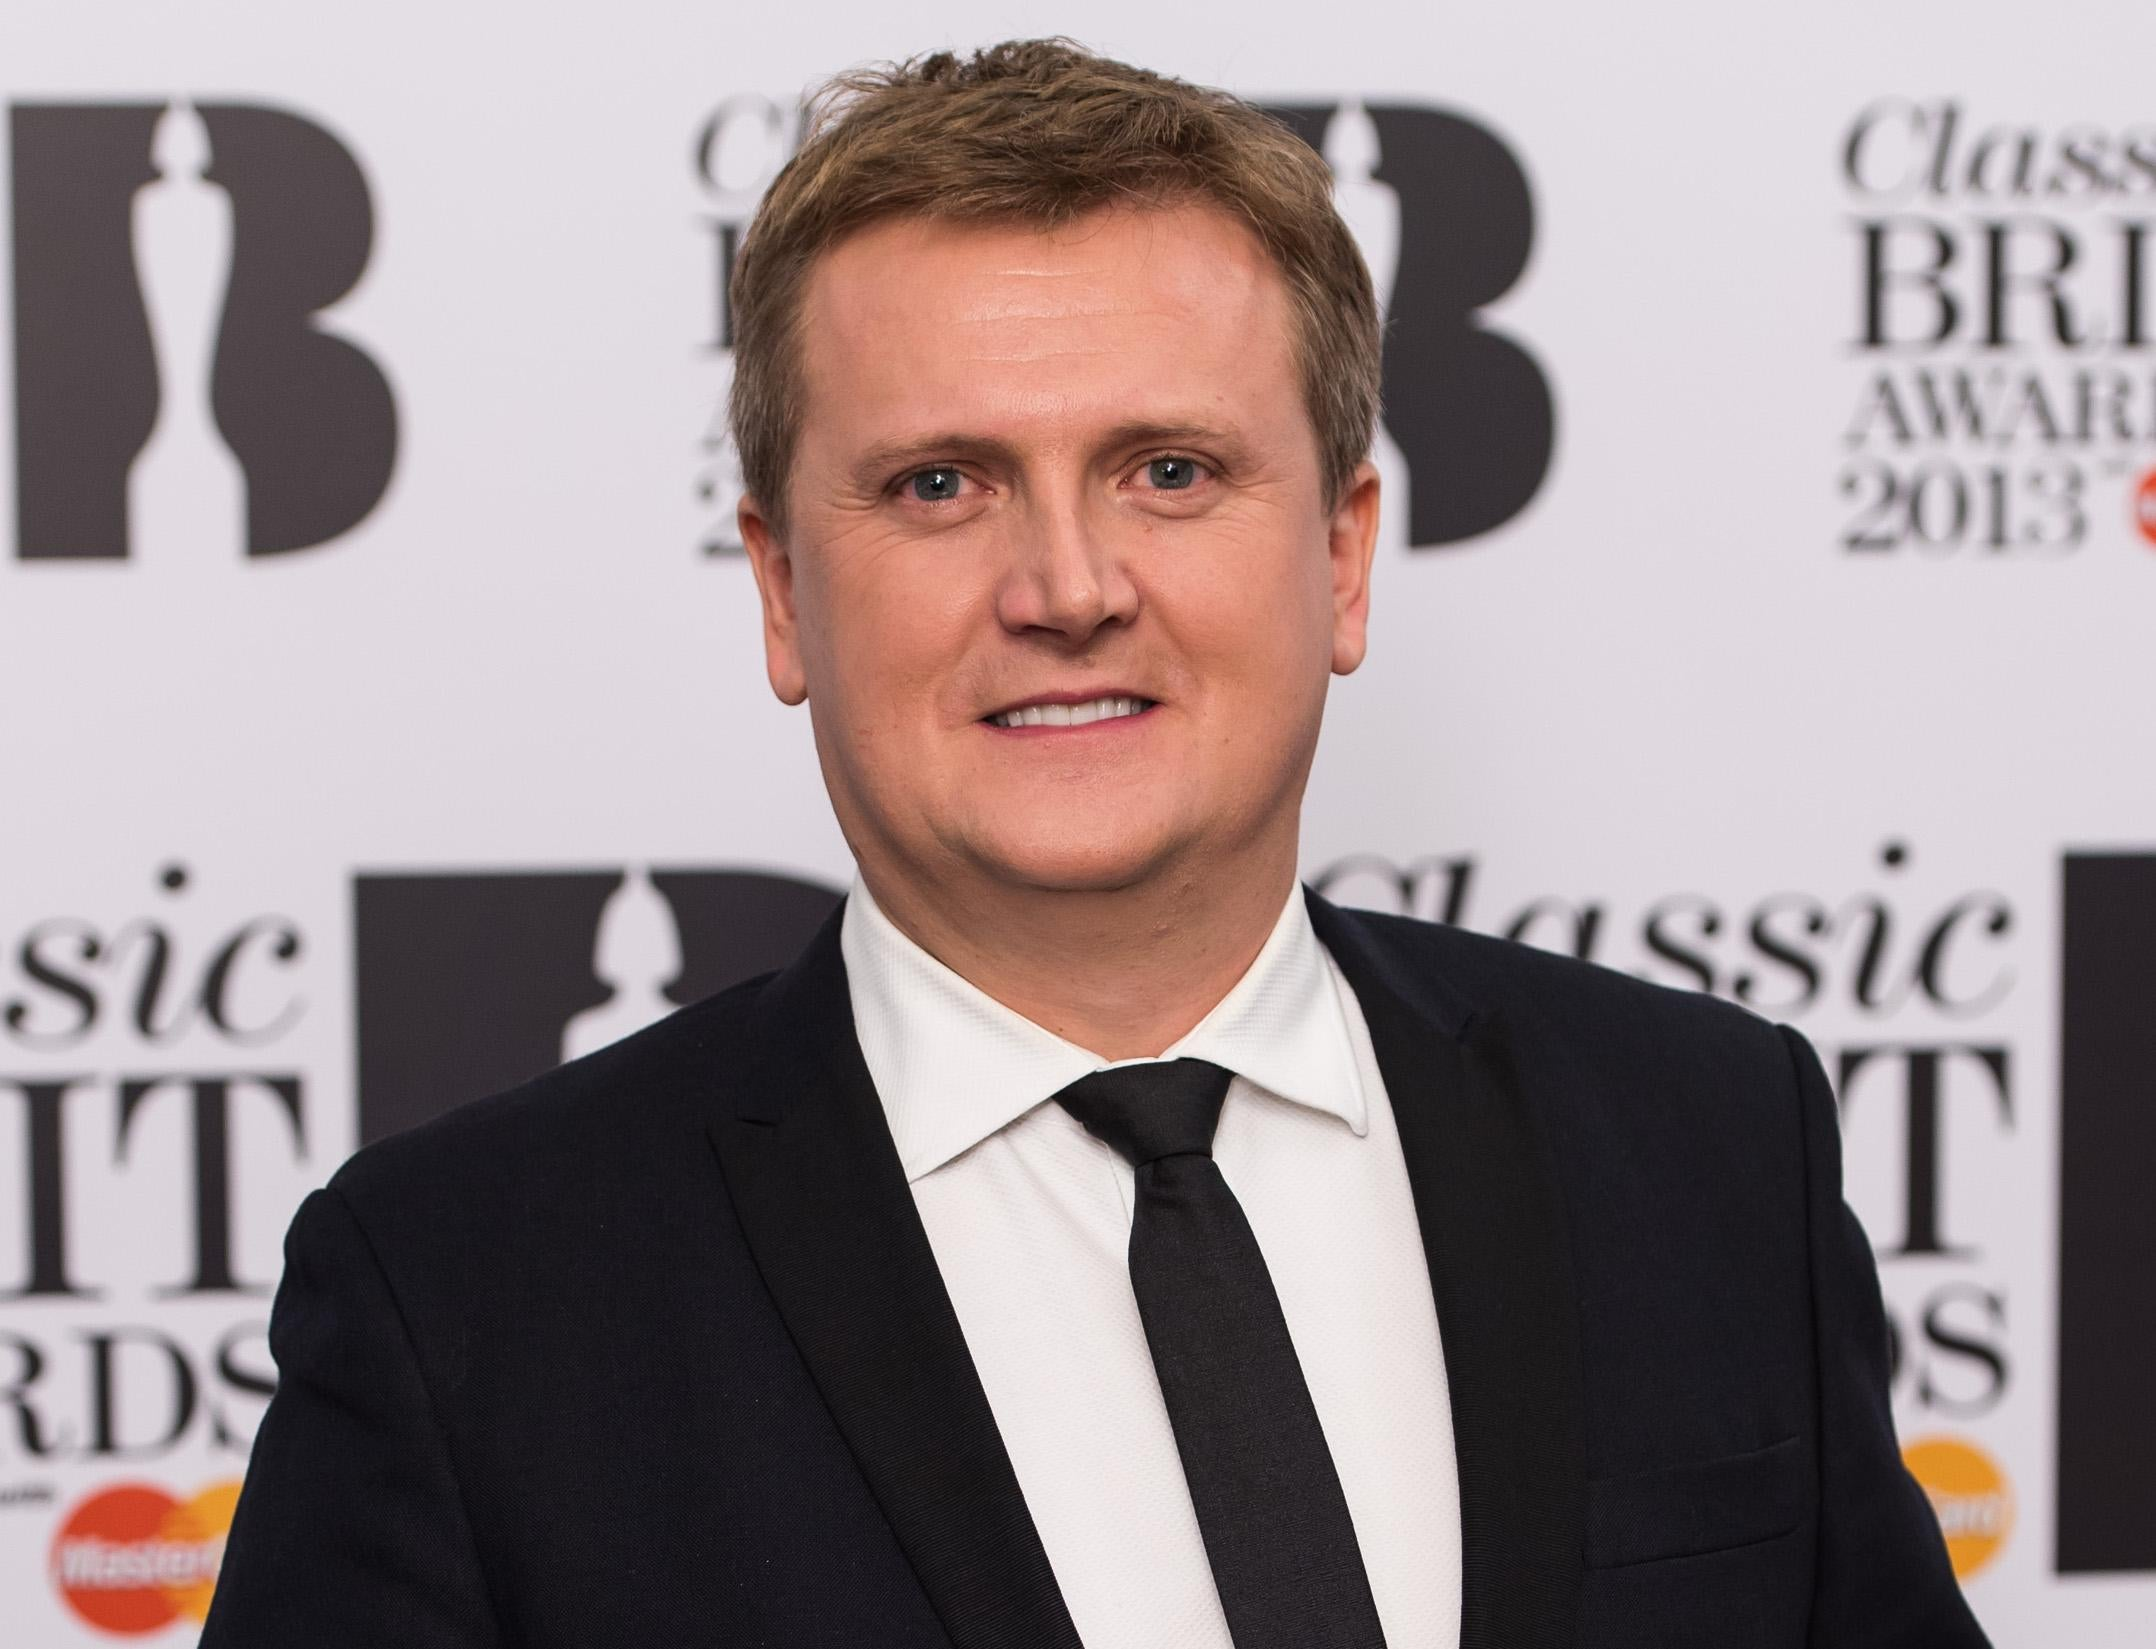 Aled Jones taken off air by BBC over sexual harassment claim